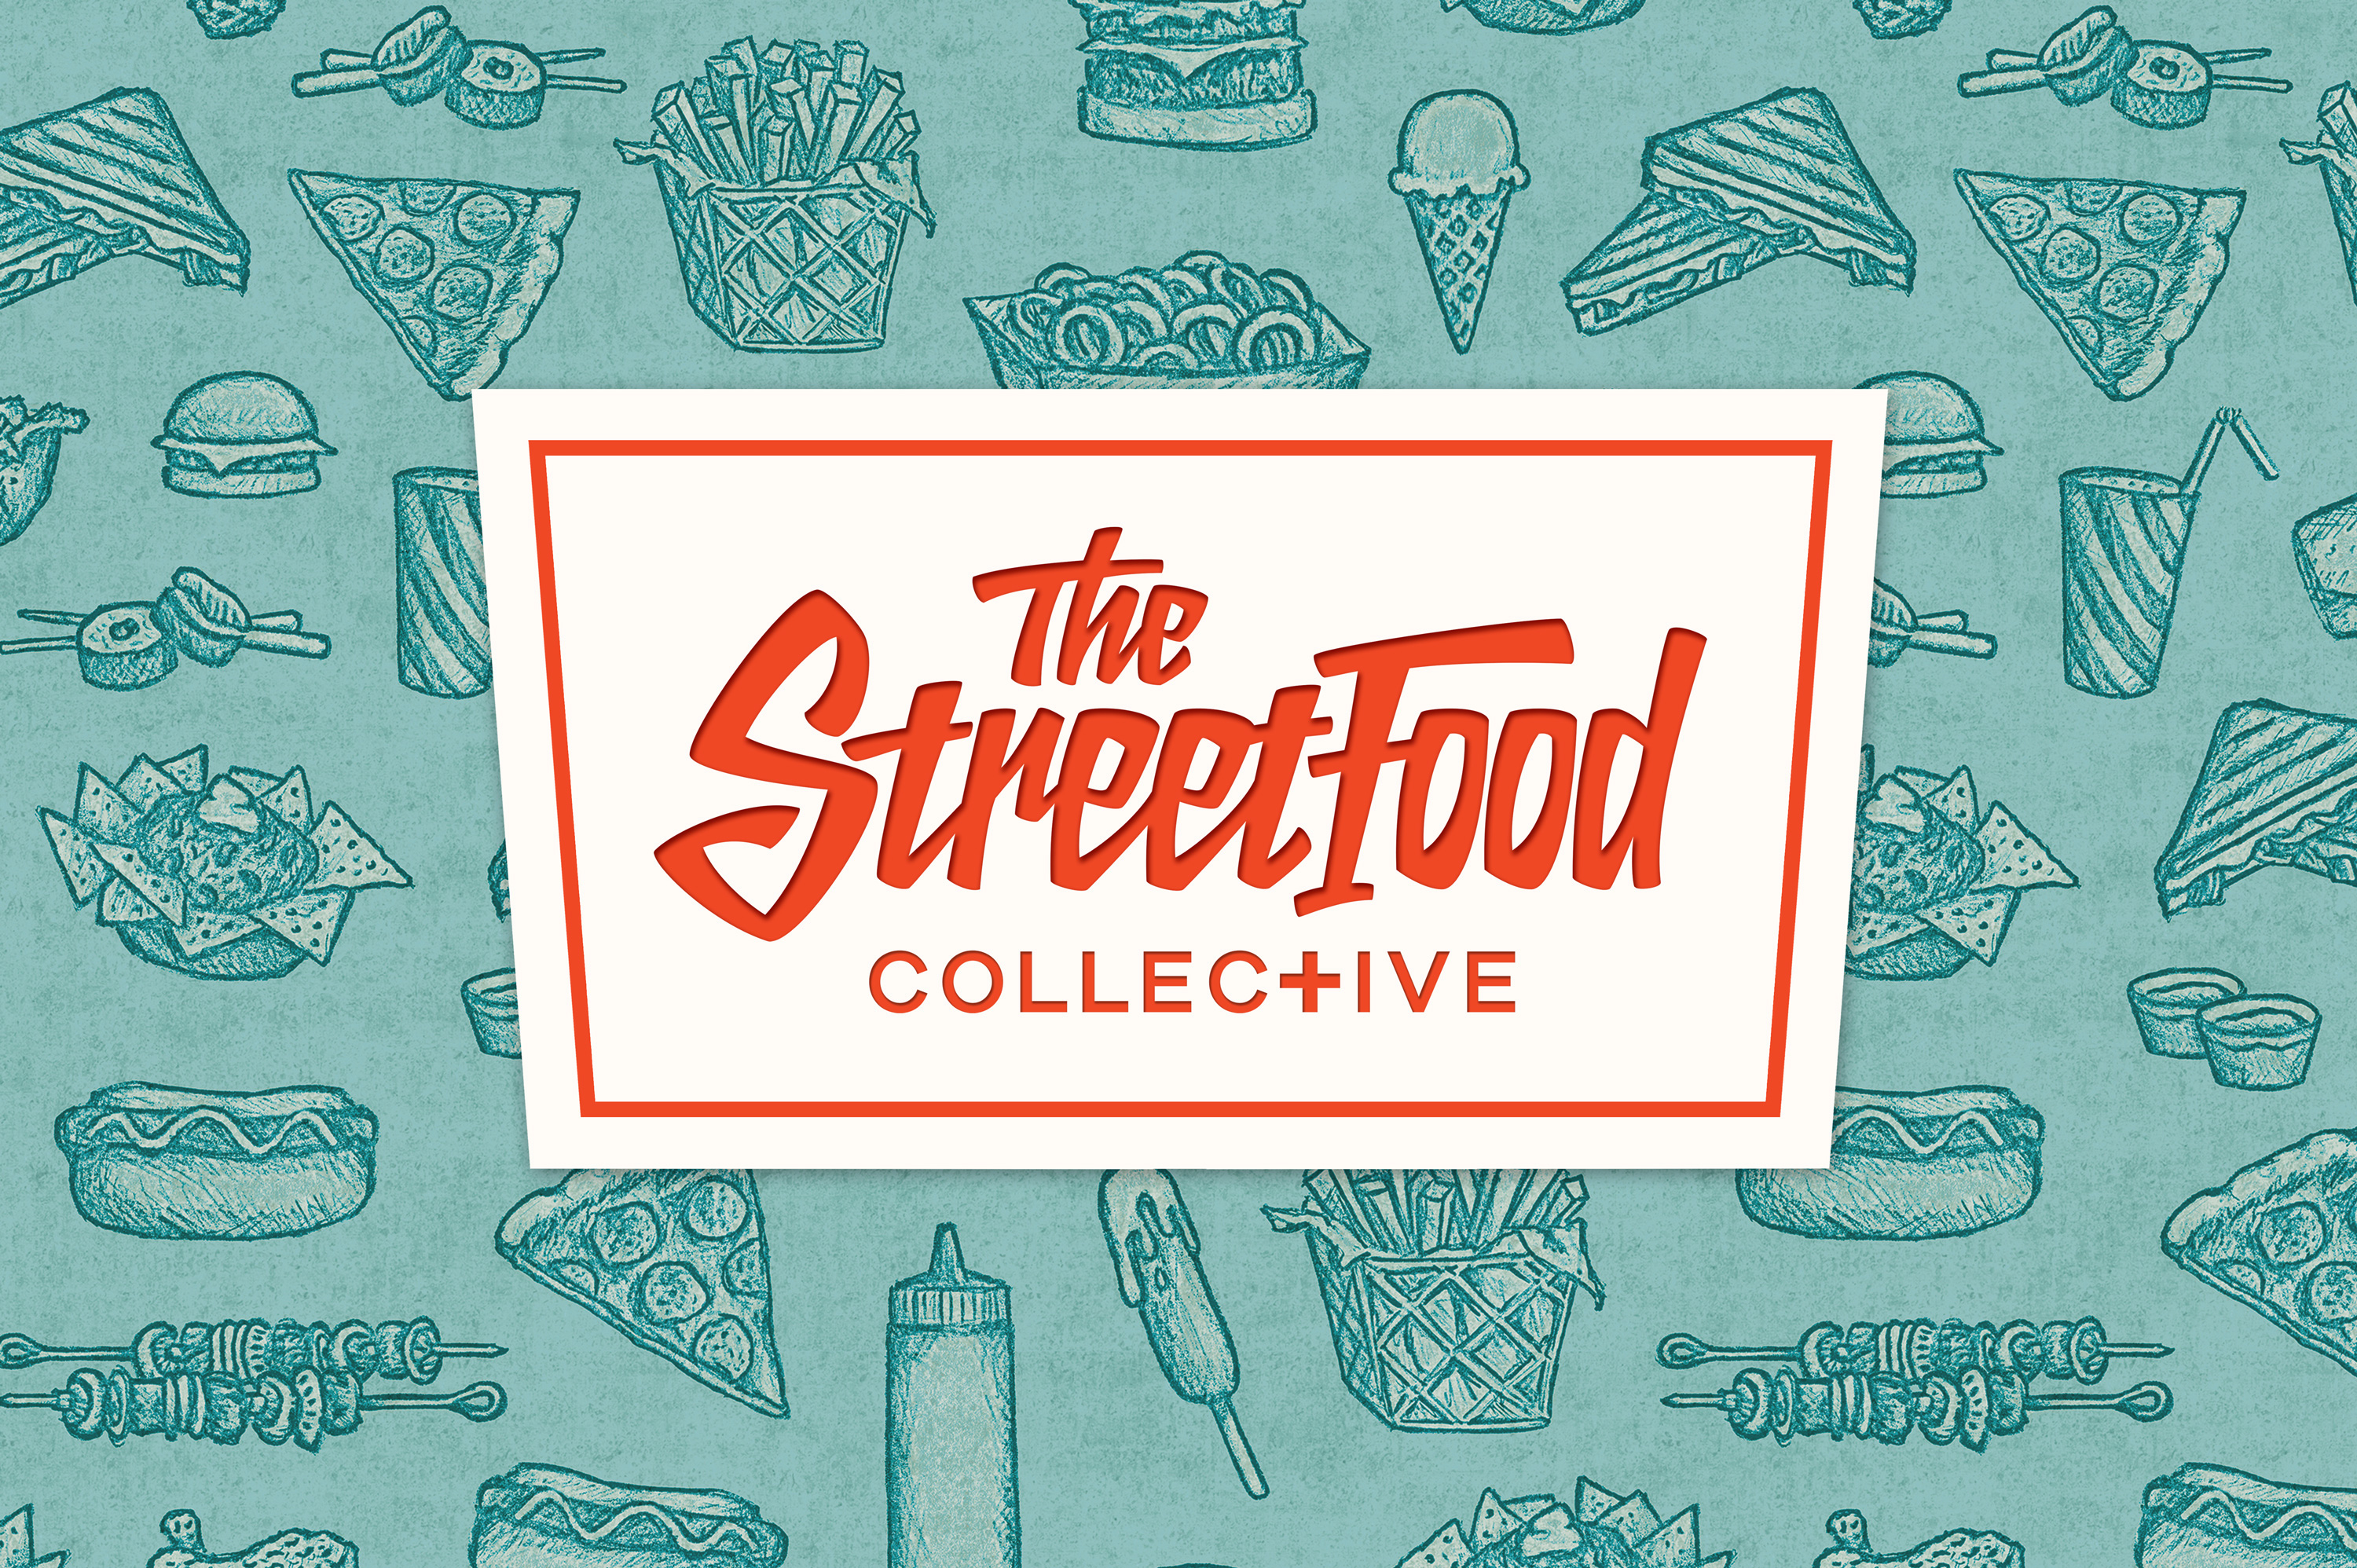 The Street Food Collective - Boteco Design